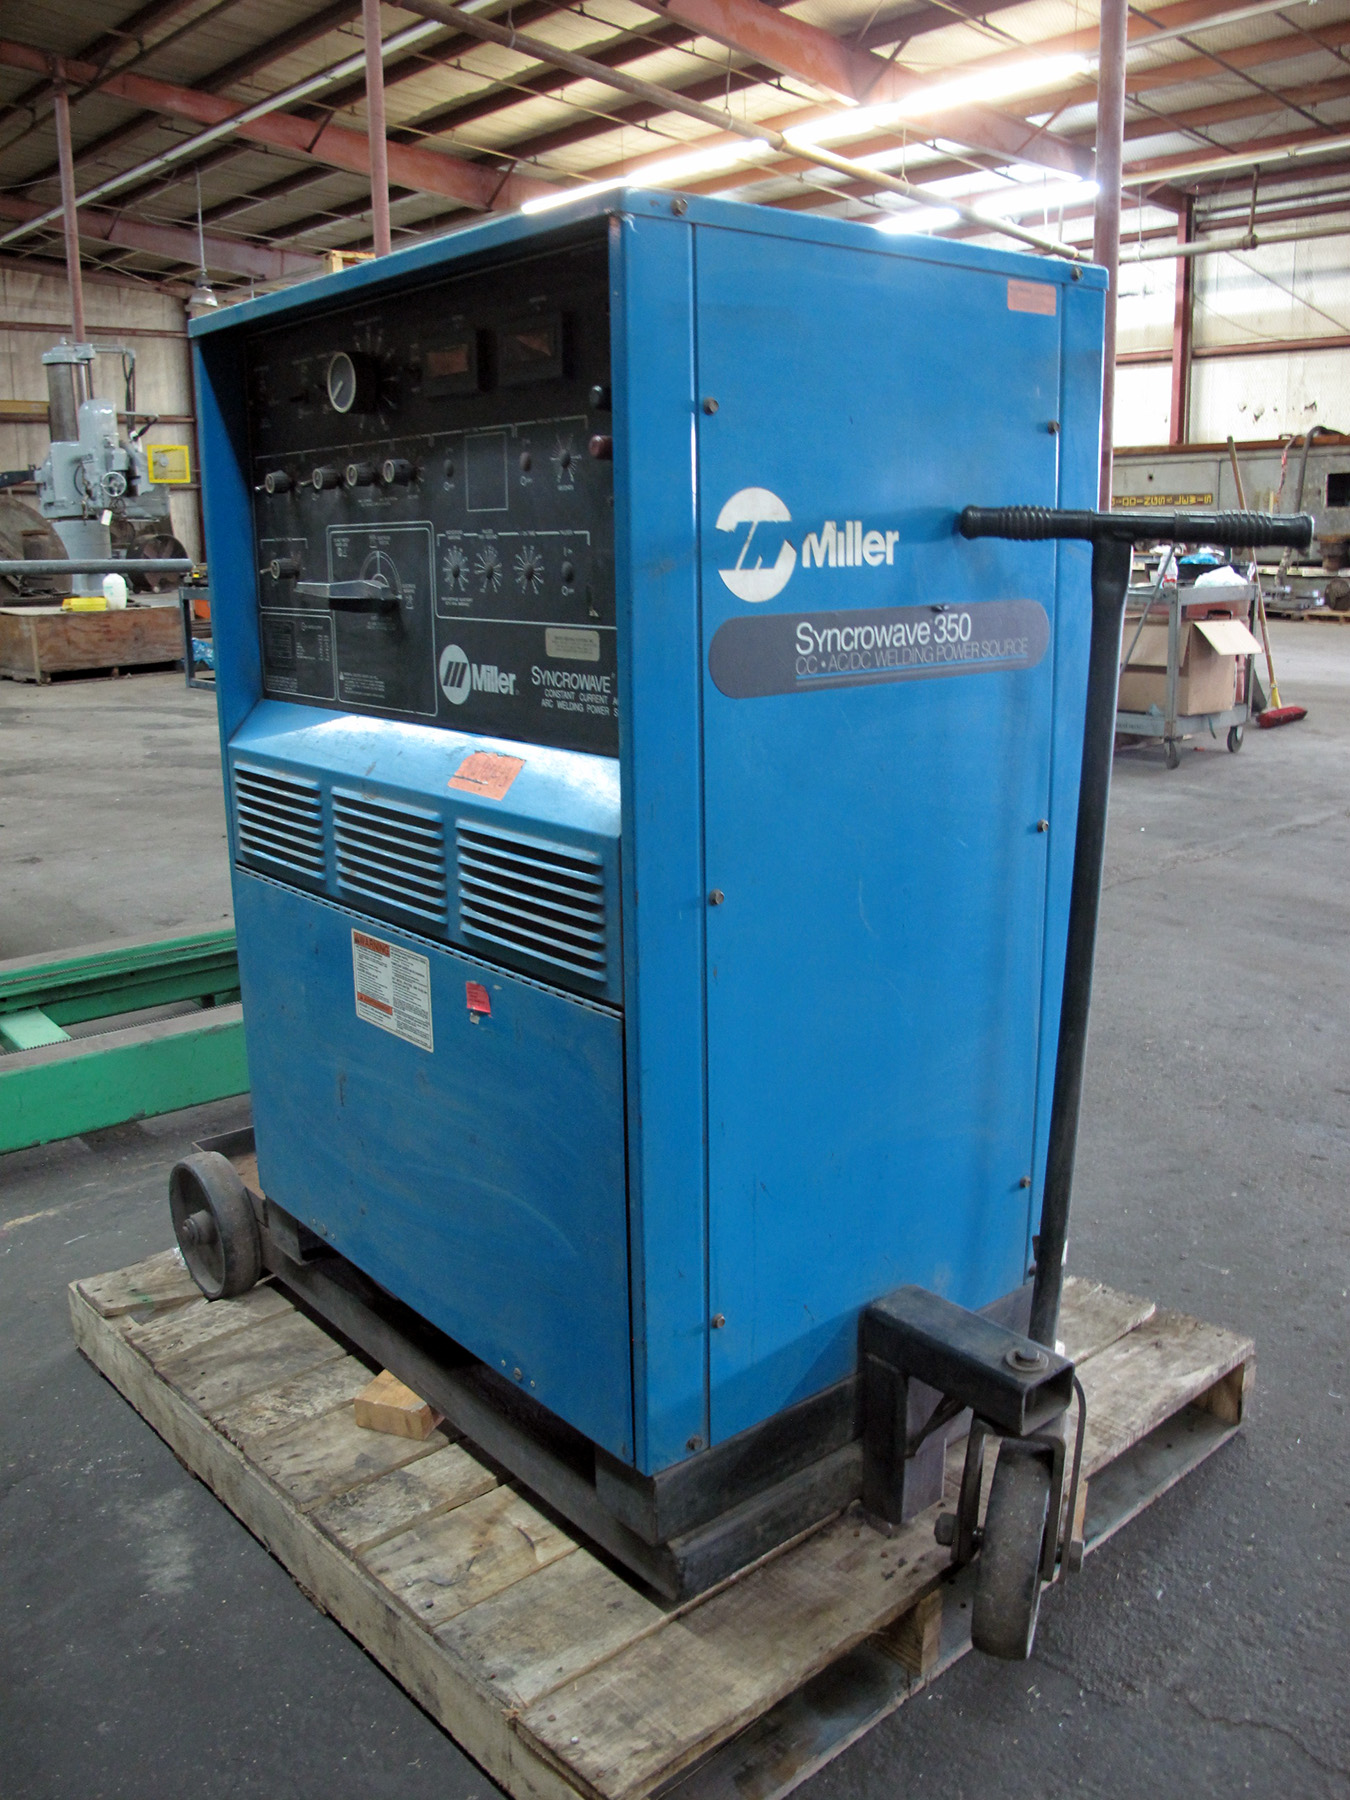 Lot 26 - WELDING MACHINE, MILLER SYNCROWAVE 350, 350 amps @ 34 v. (40% duty cycle), 300 amps @ 32 v. (60%